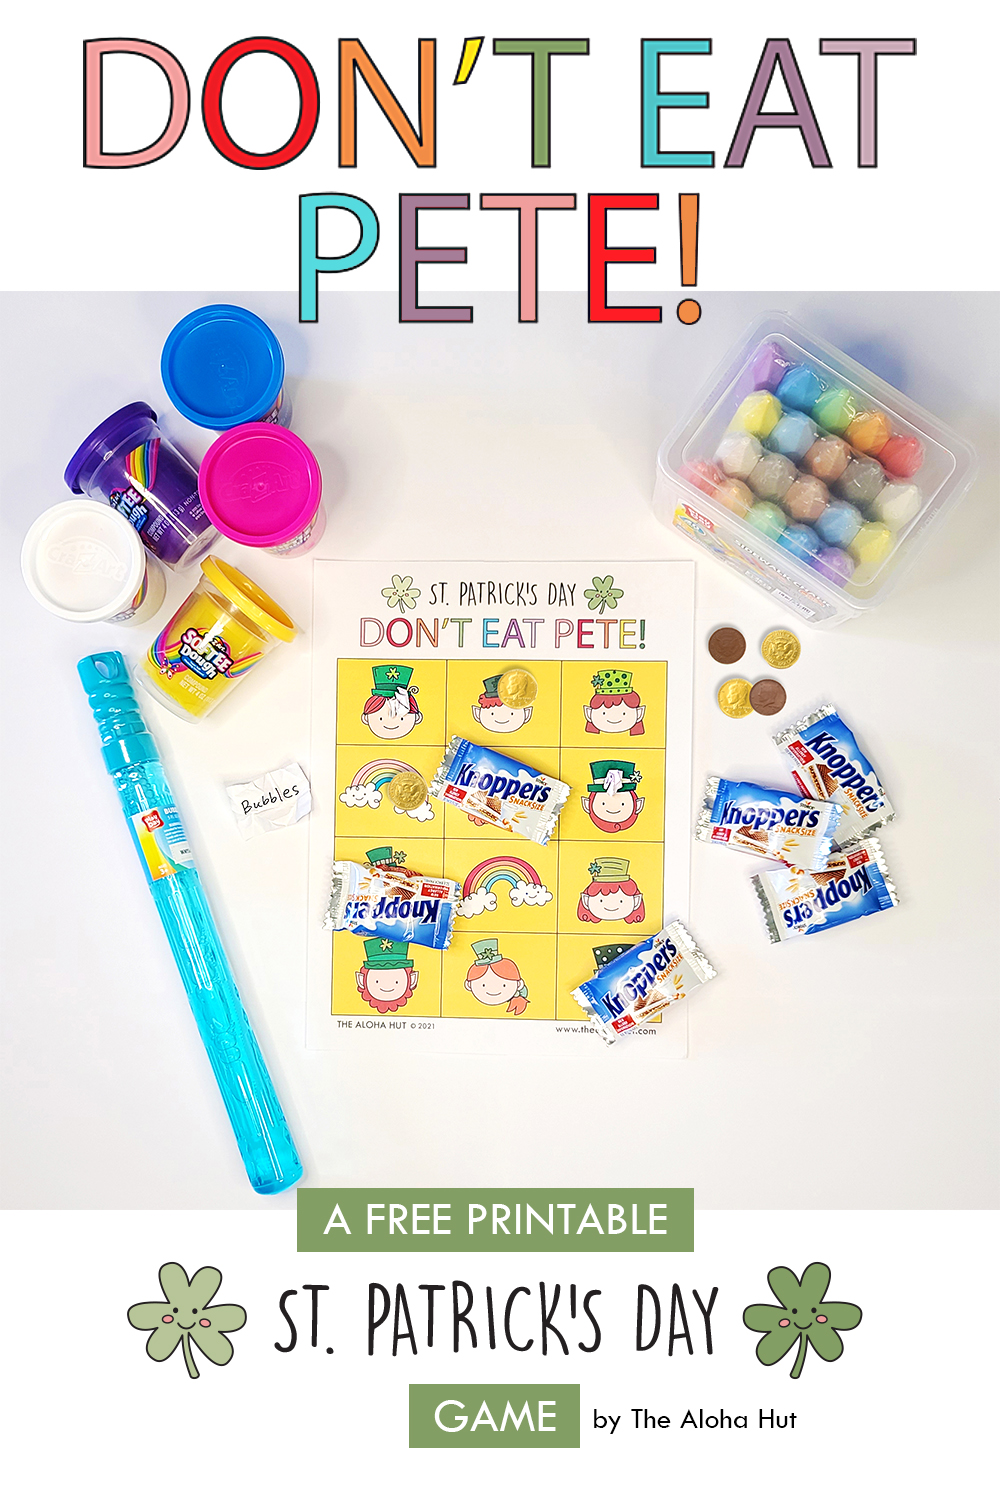 Free Printable St Patrick's Day Game Don't Eat Pete 2 by the Aloha Hut